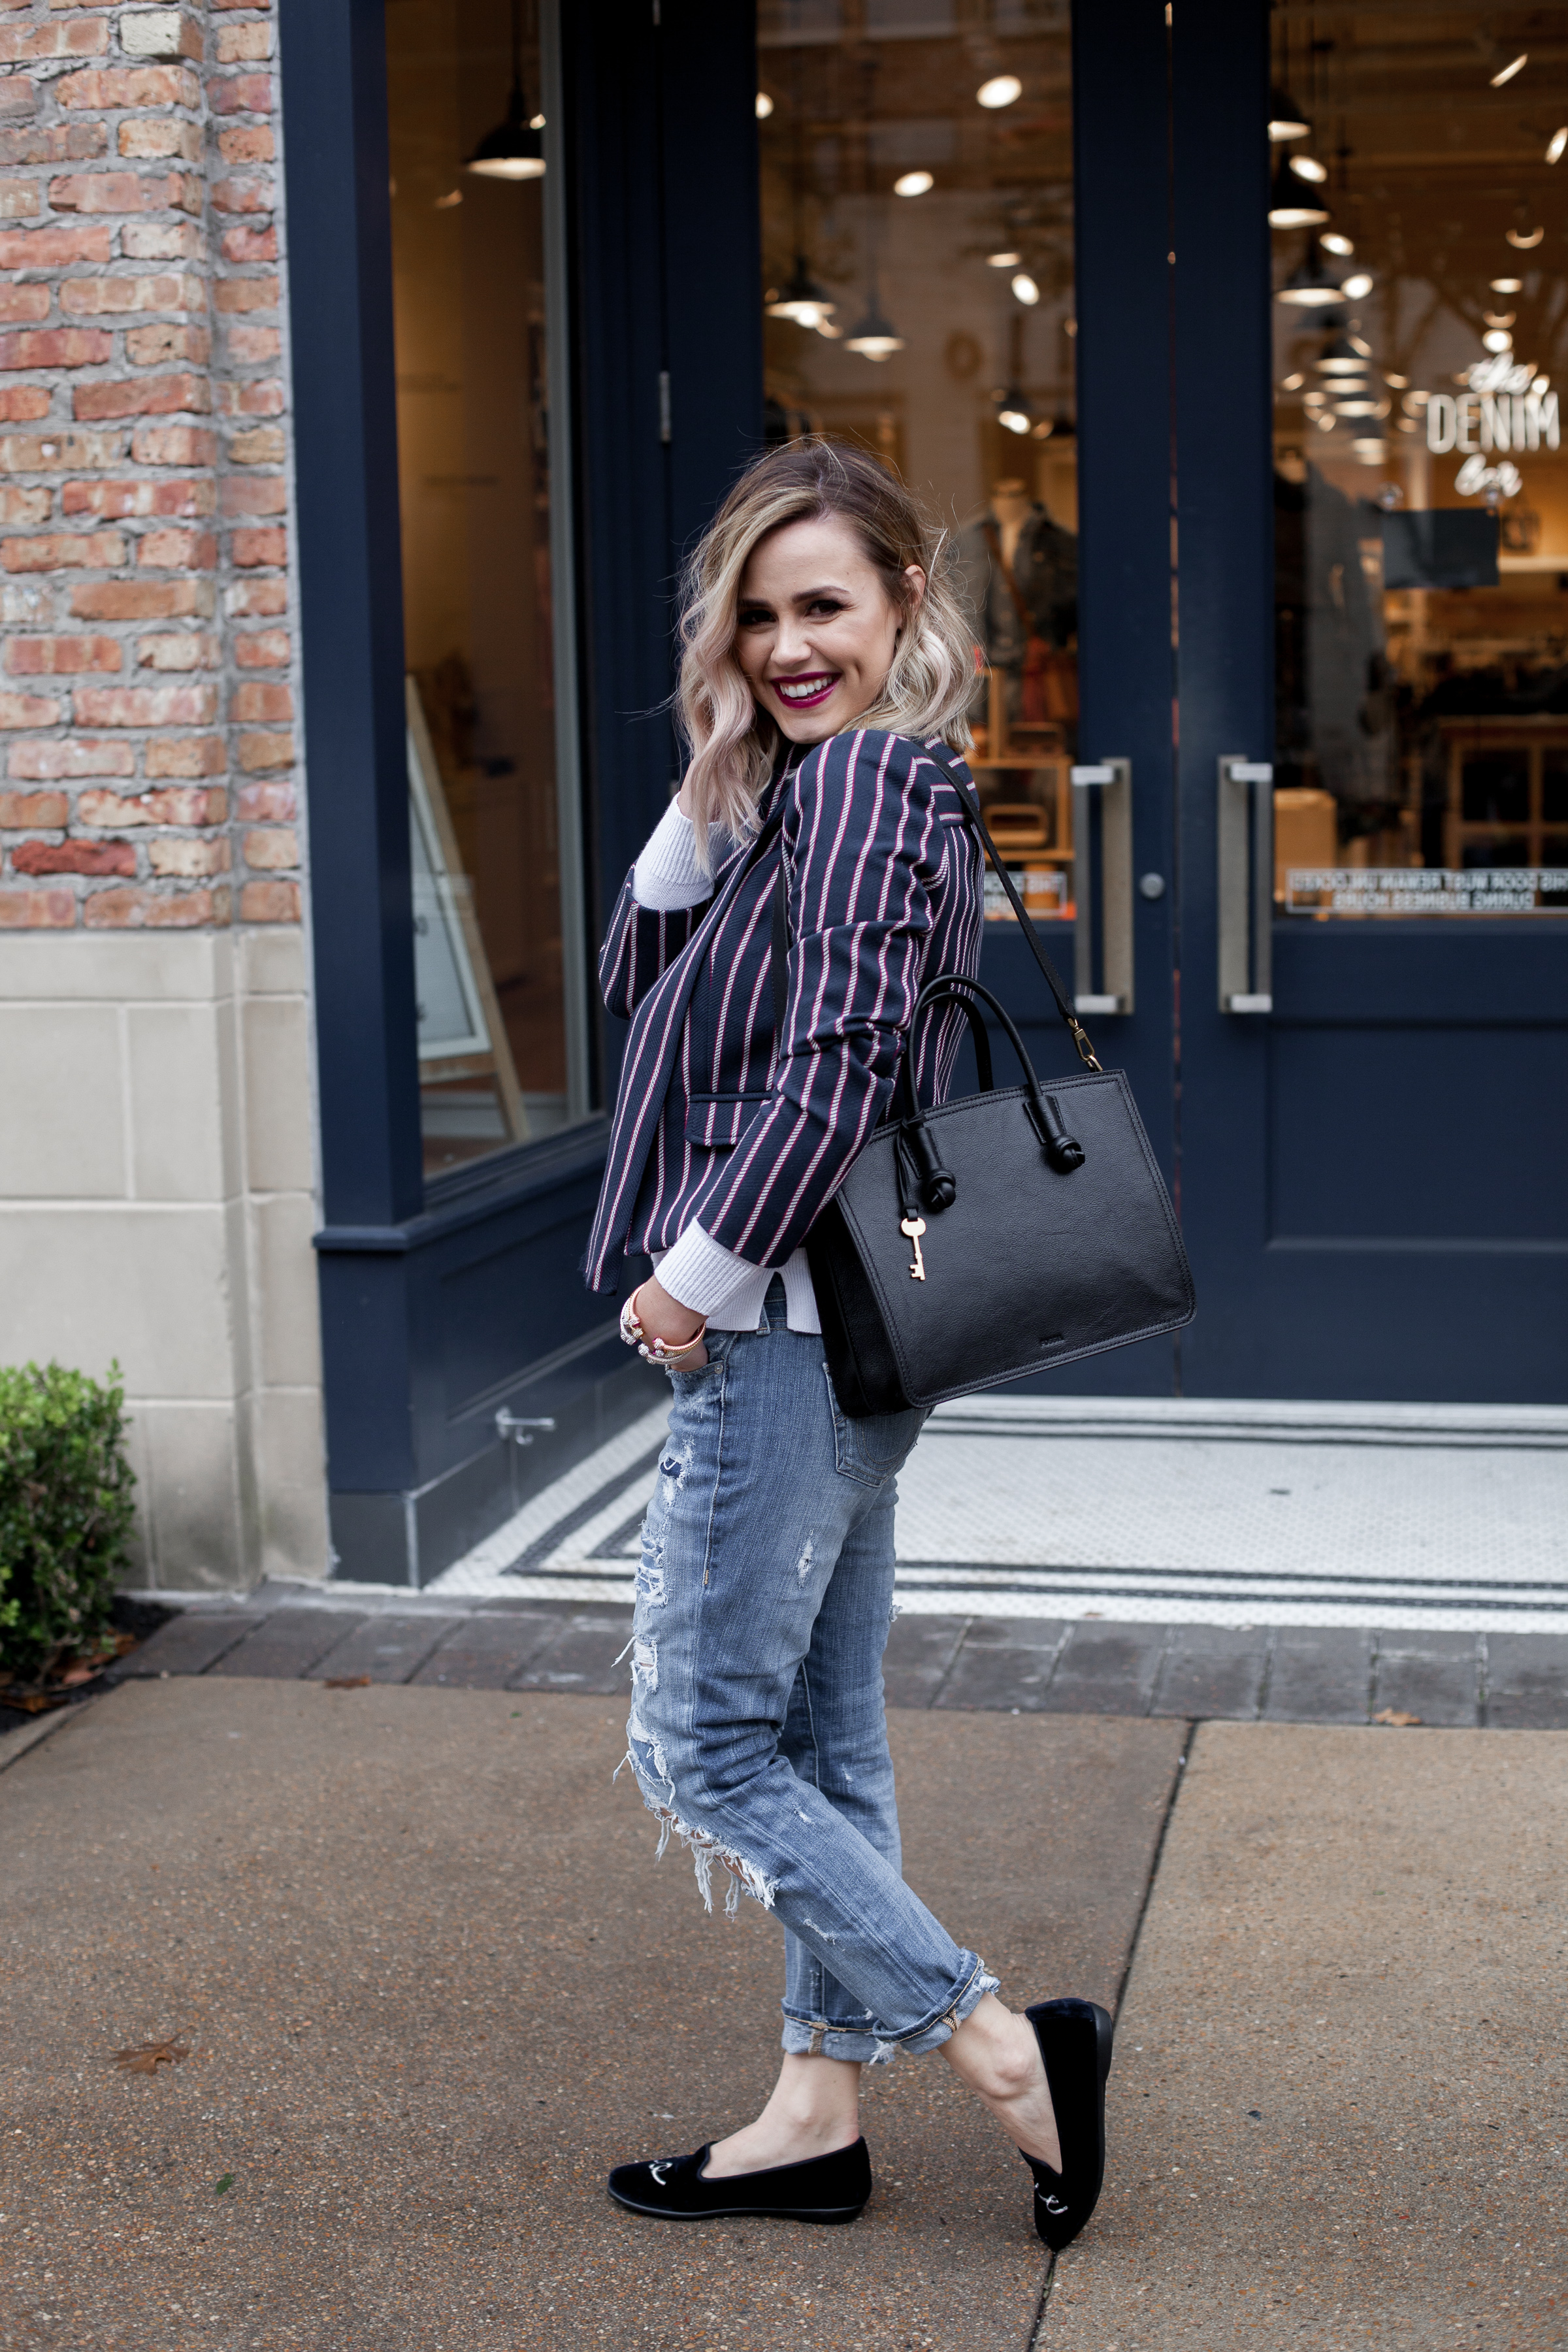 Houston Fashion blogger Uptown with Elly Brown shares a few tips and tricks on how you can Dress Down A Blazer. Click here for more!